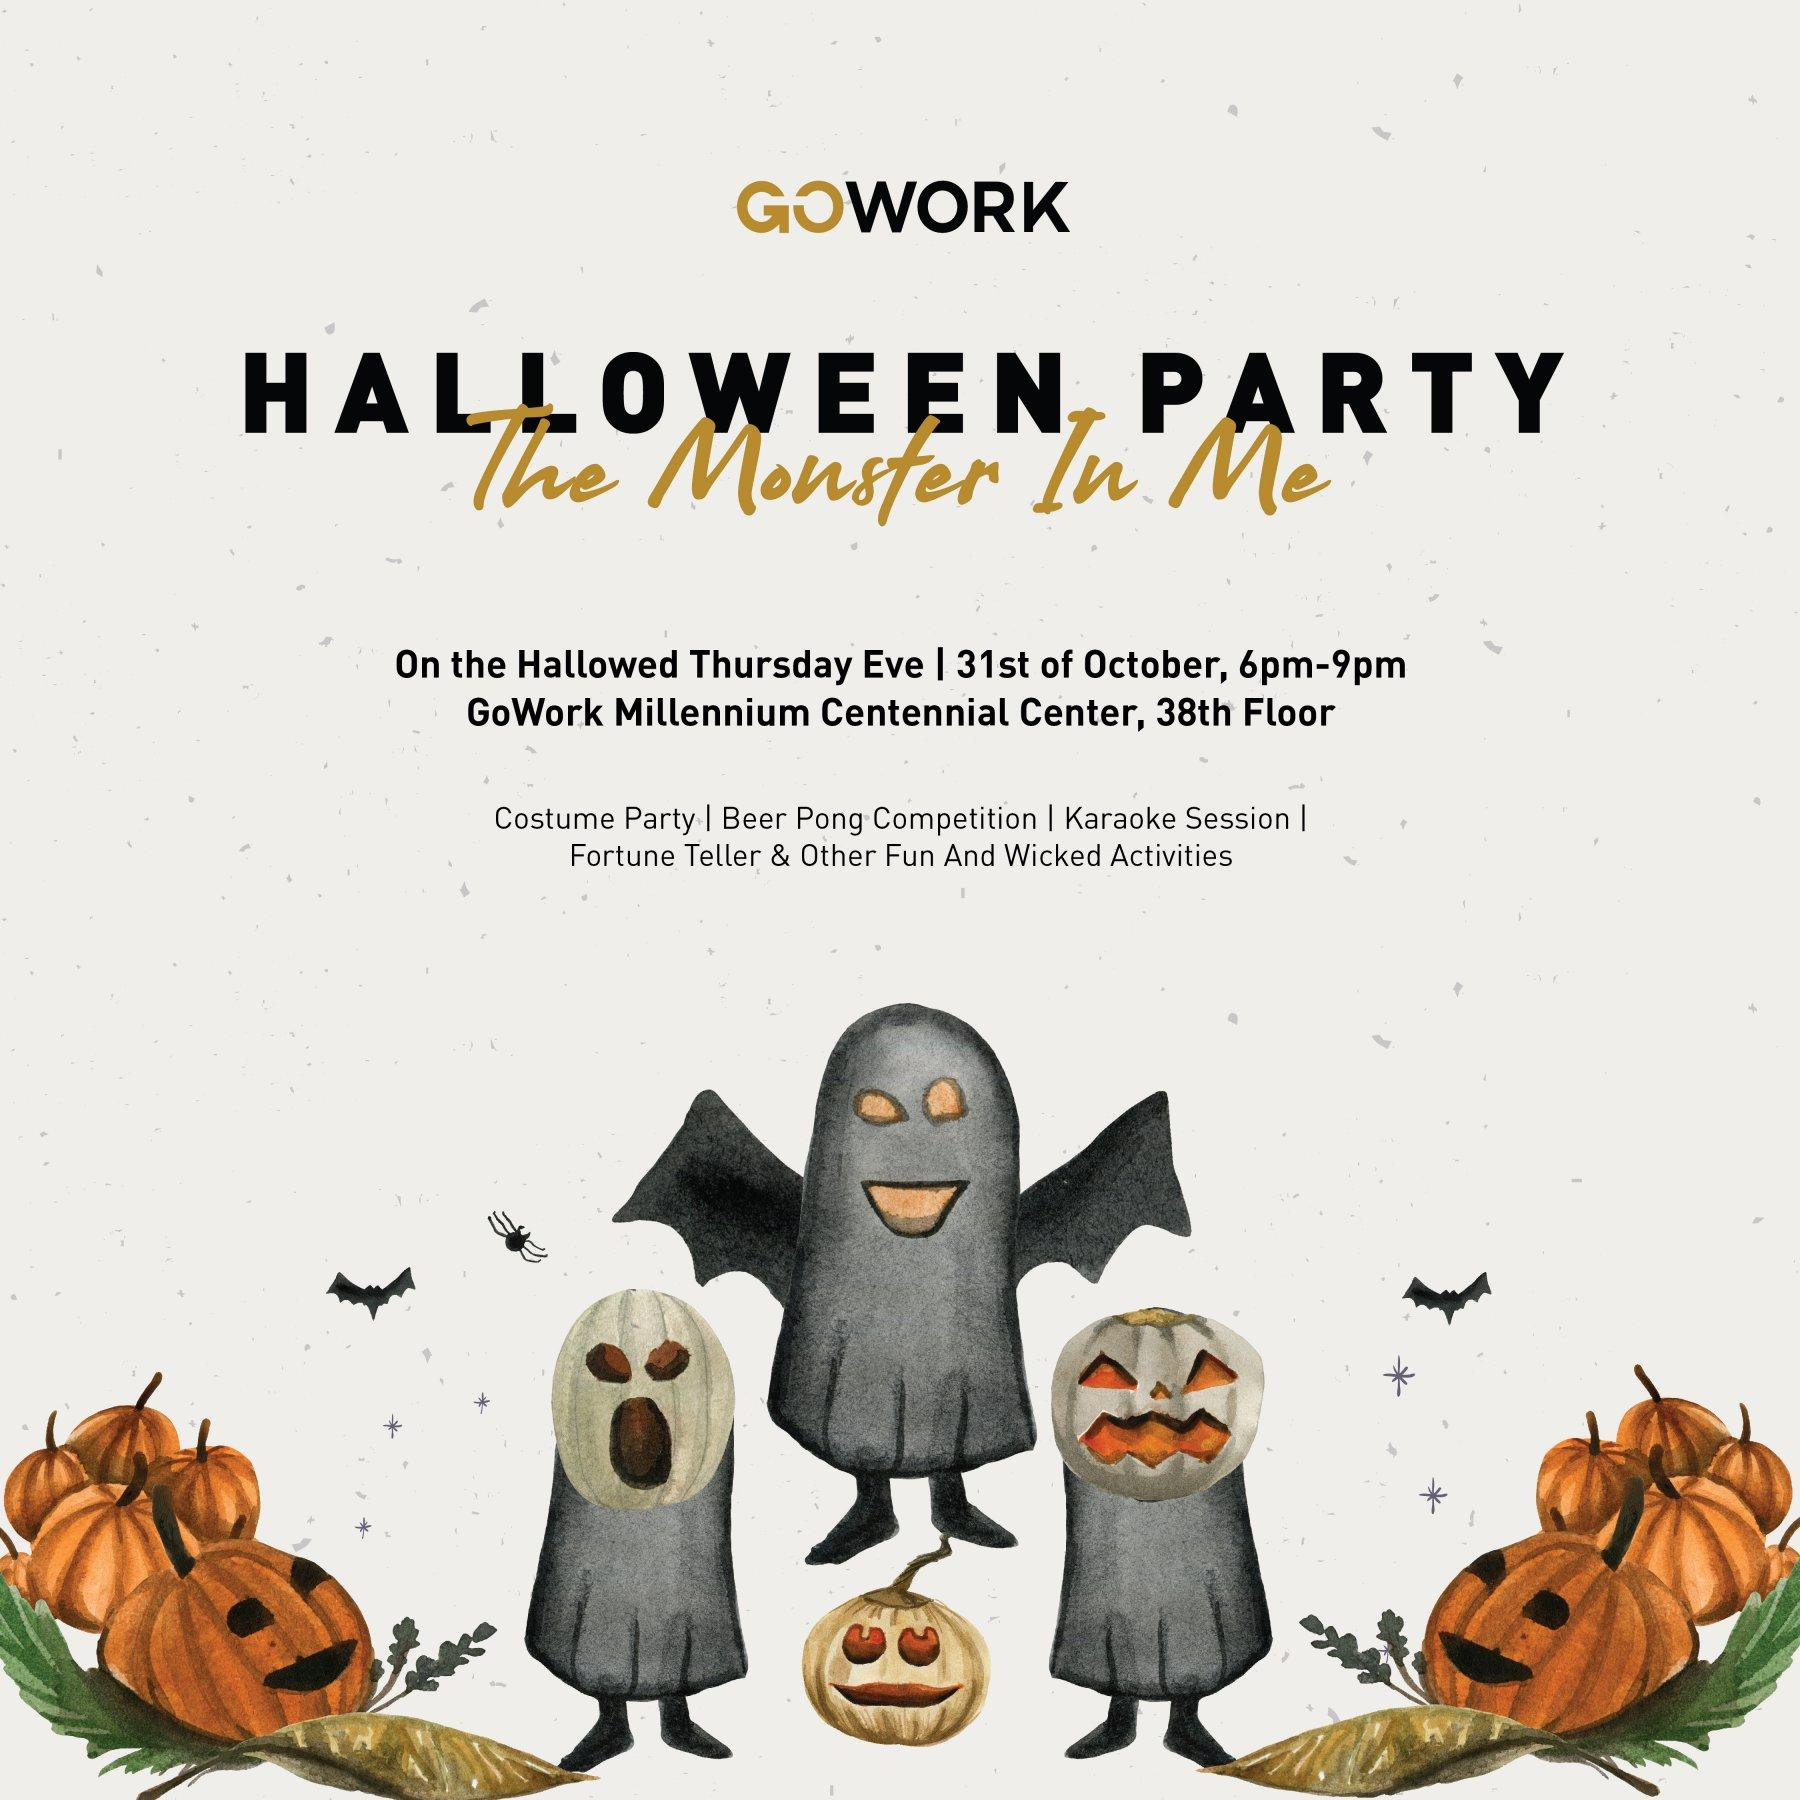 GoWork Halloween Party 2019: The Monster In Me